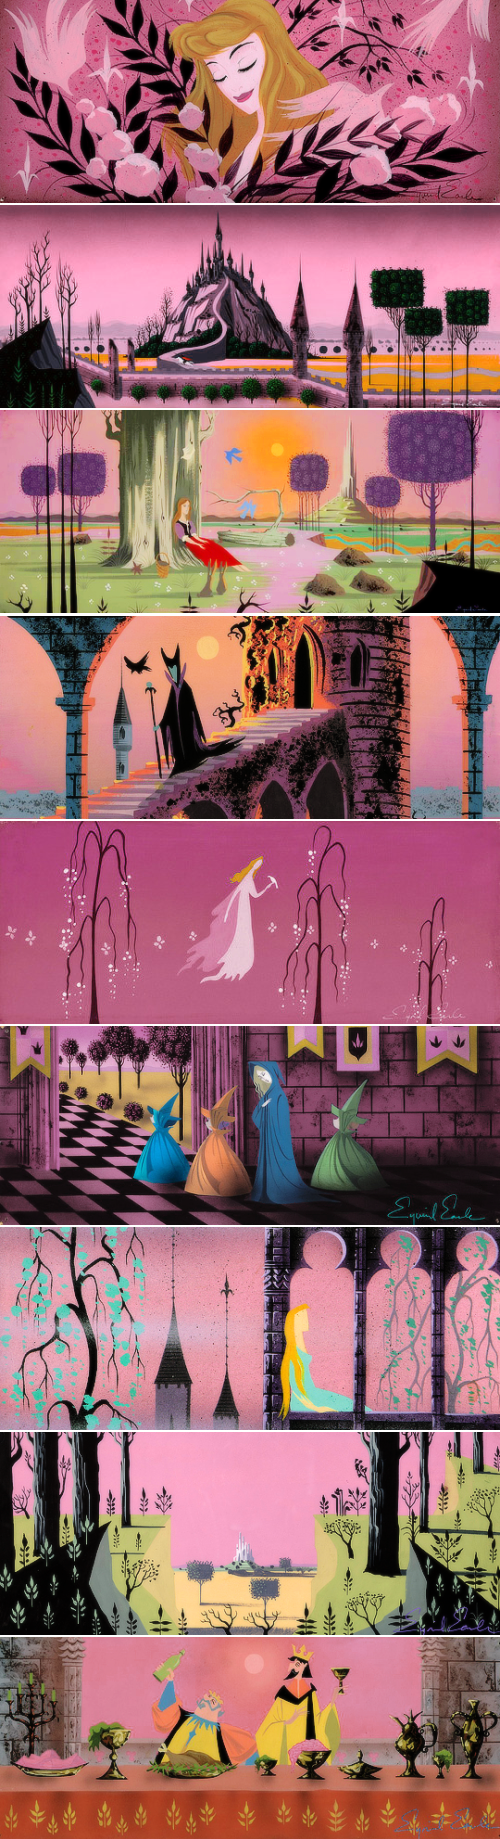 Concept art by Eyvind Earle for Disney's Sleeping Beauty (1959)